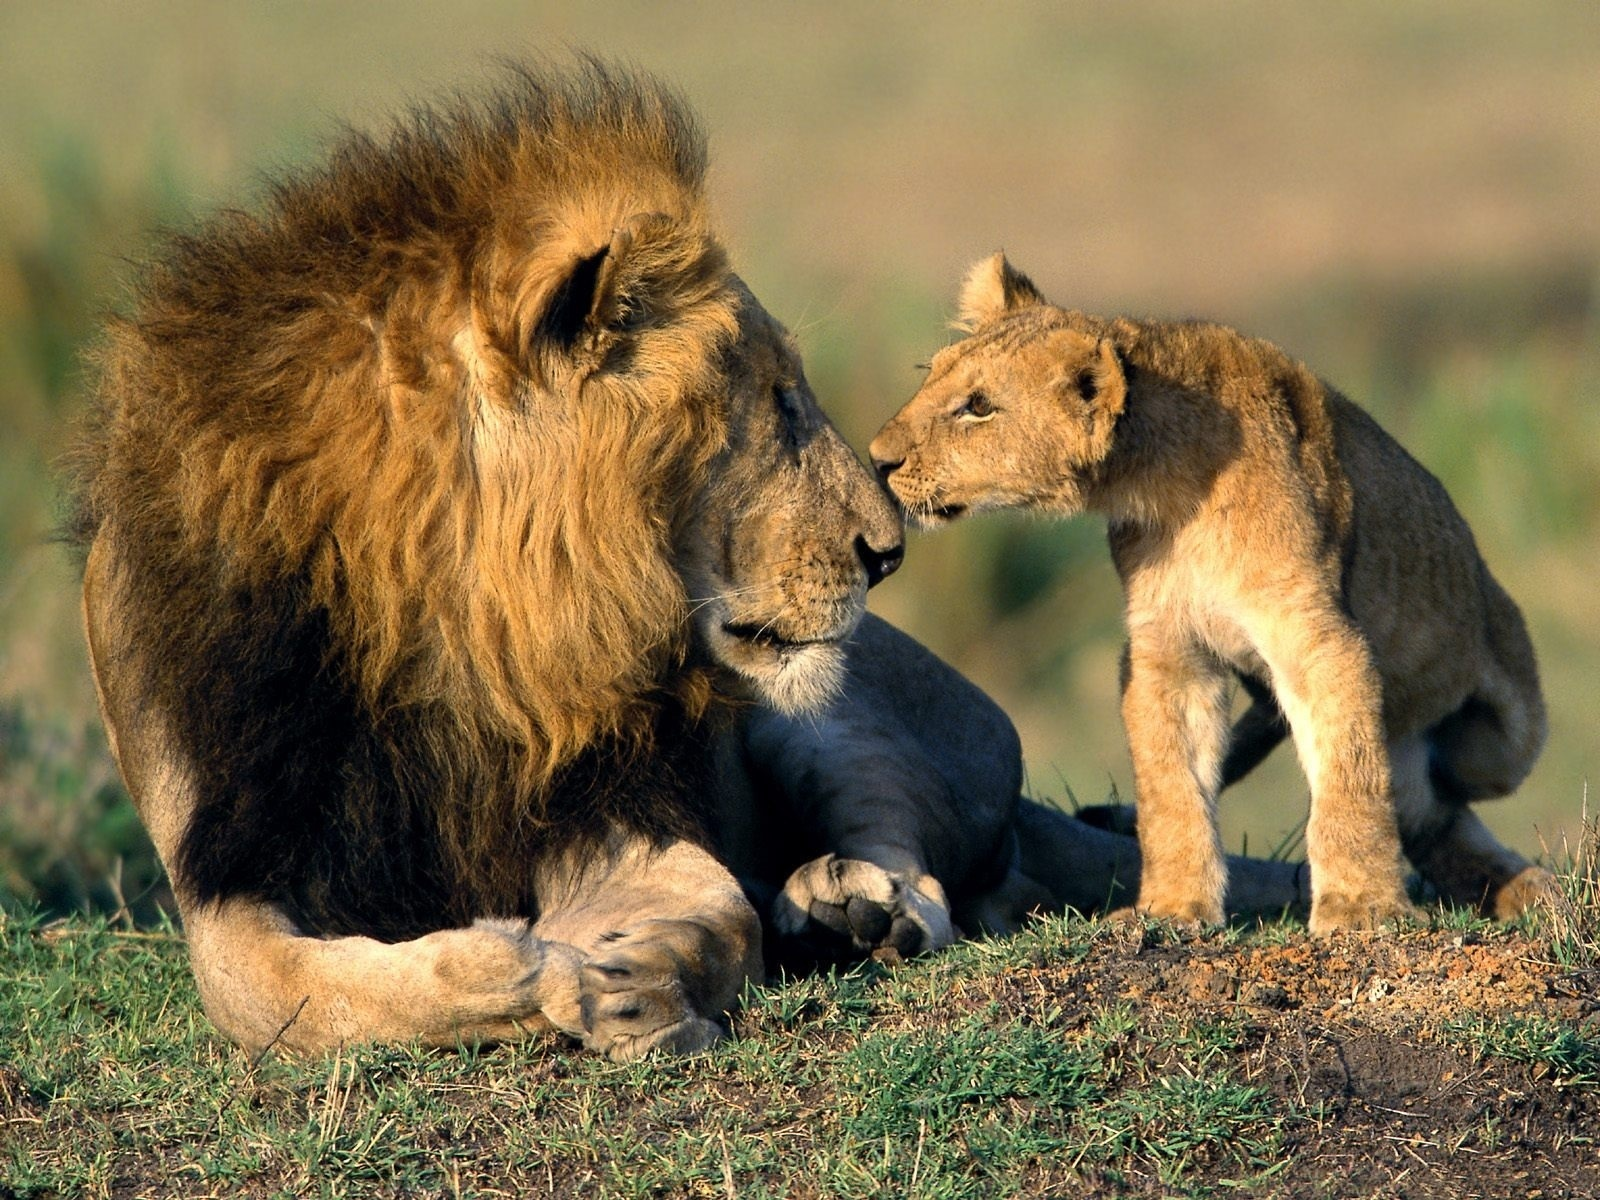 http://4.bp.blogspot.com/_bi1ibZOYd28/TLnV4EqY5VI/AAAAAAAAA4M/xszV_l2dUEM/s1600/Father-And-Son-wild-animals-3310990-1600-1200.jpg